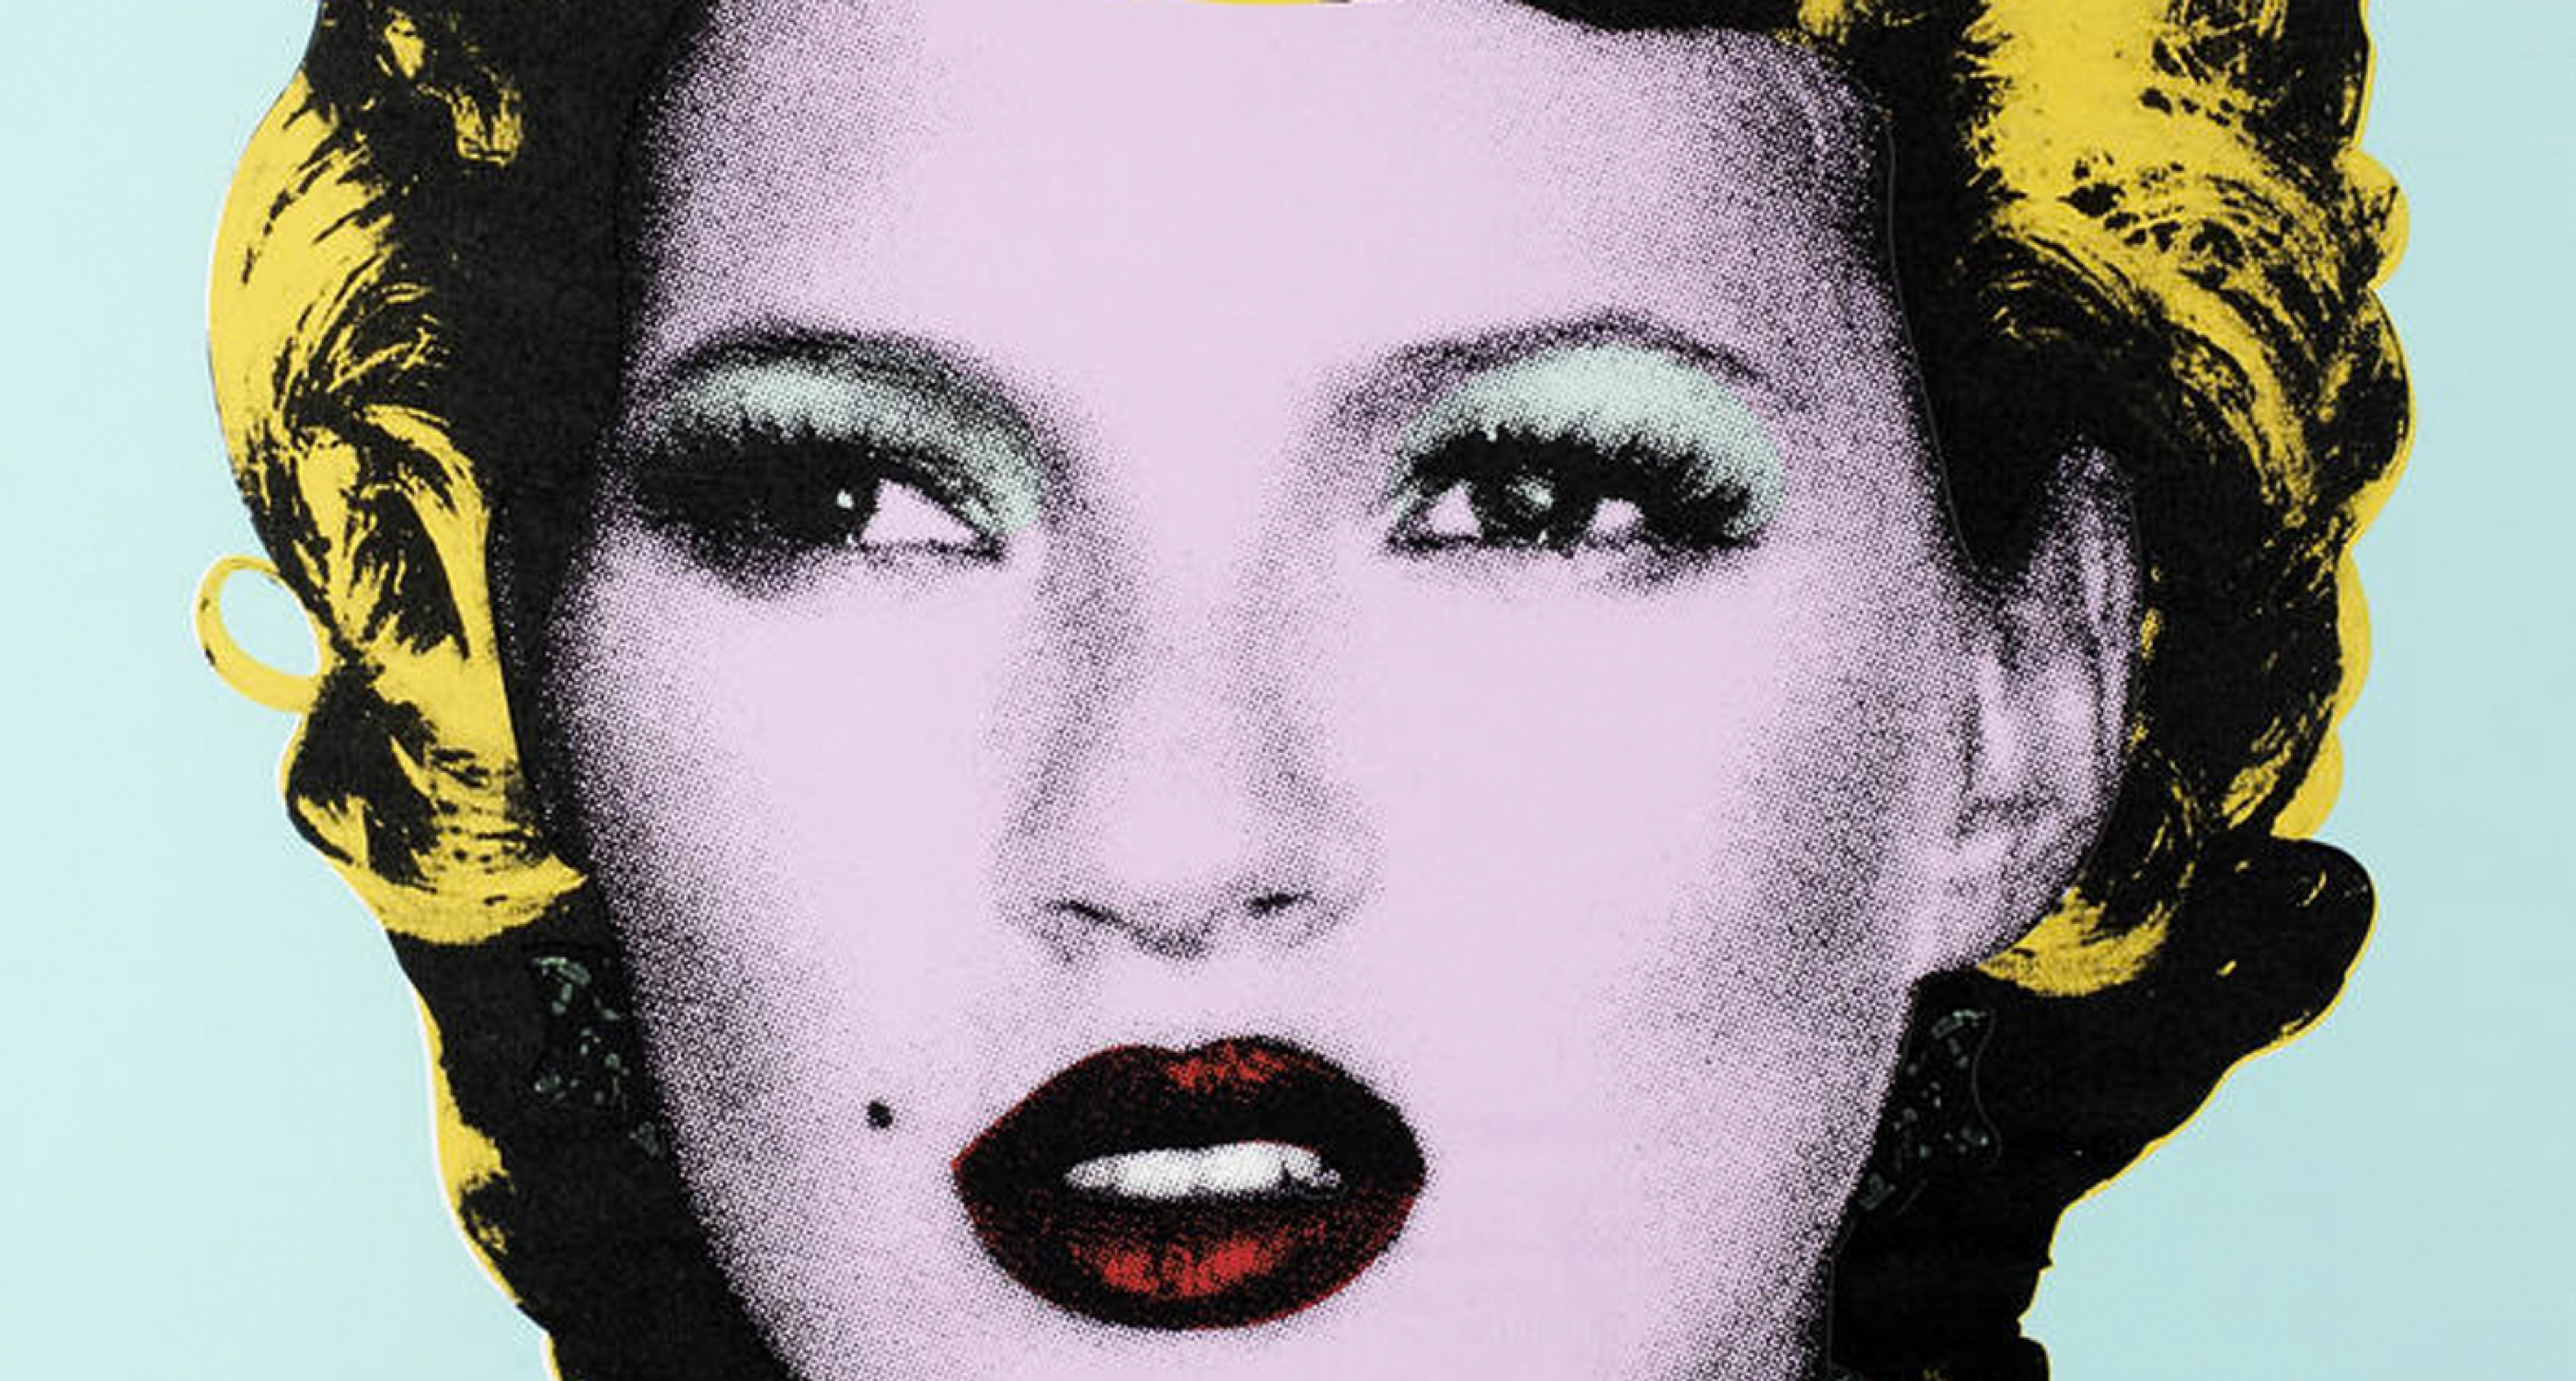 Banksy 'Kate Moss' (2005), estimate £25,000 - 35,000.